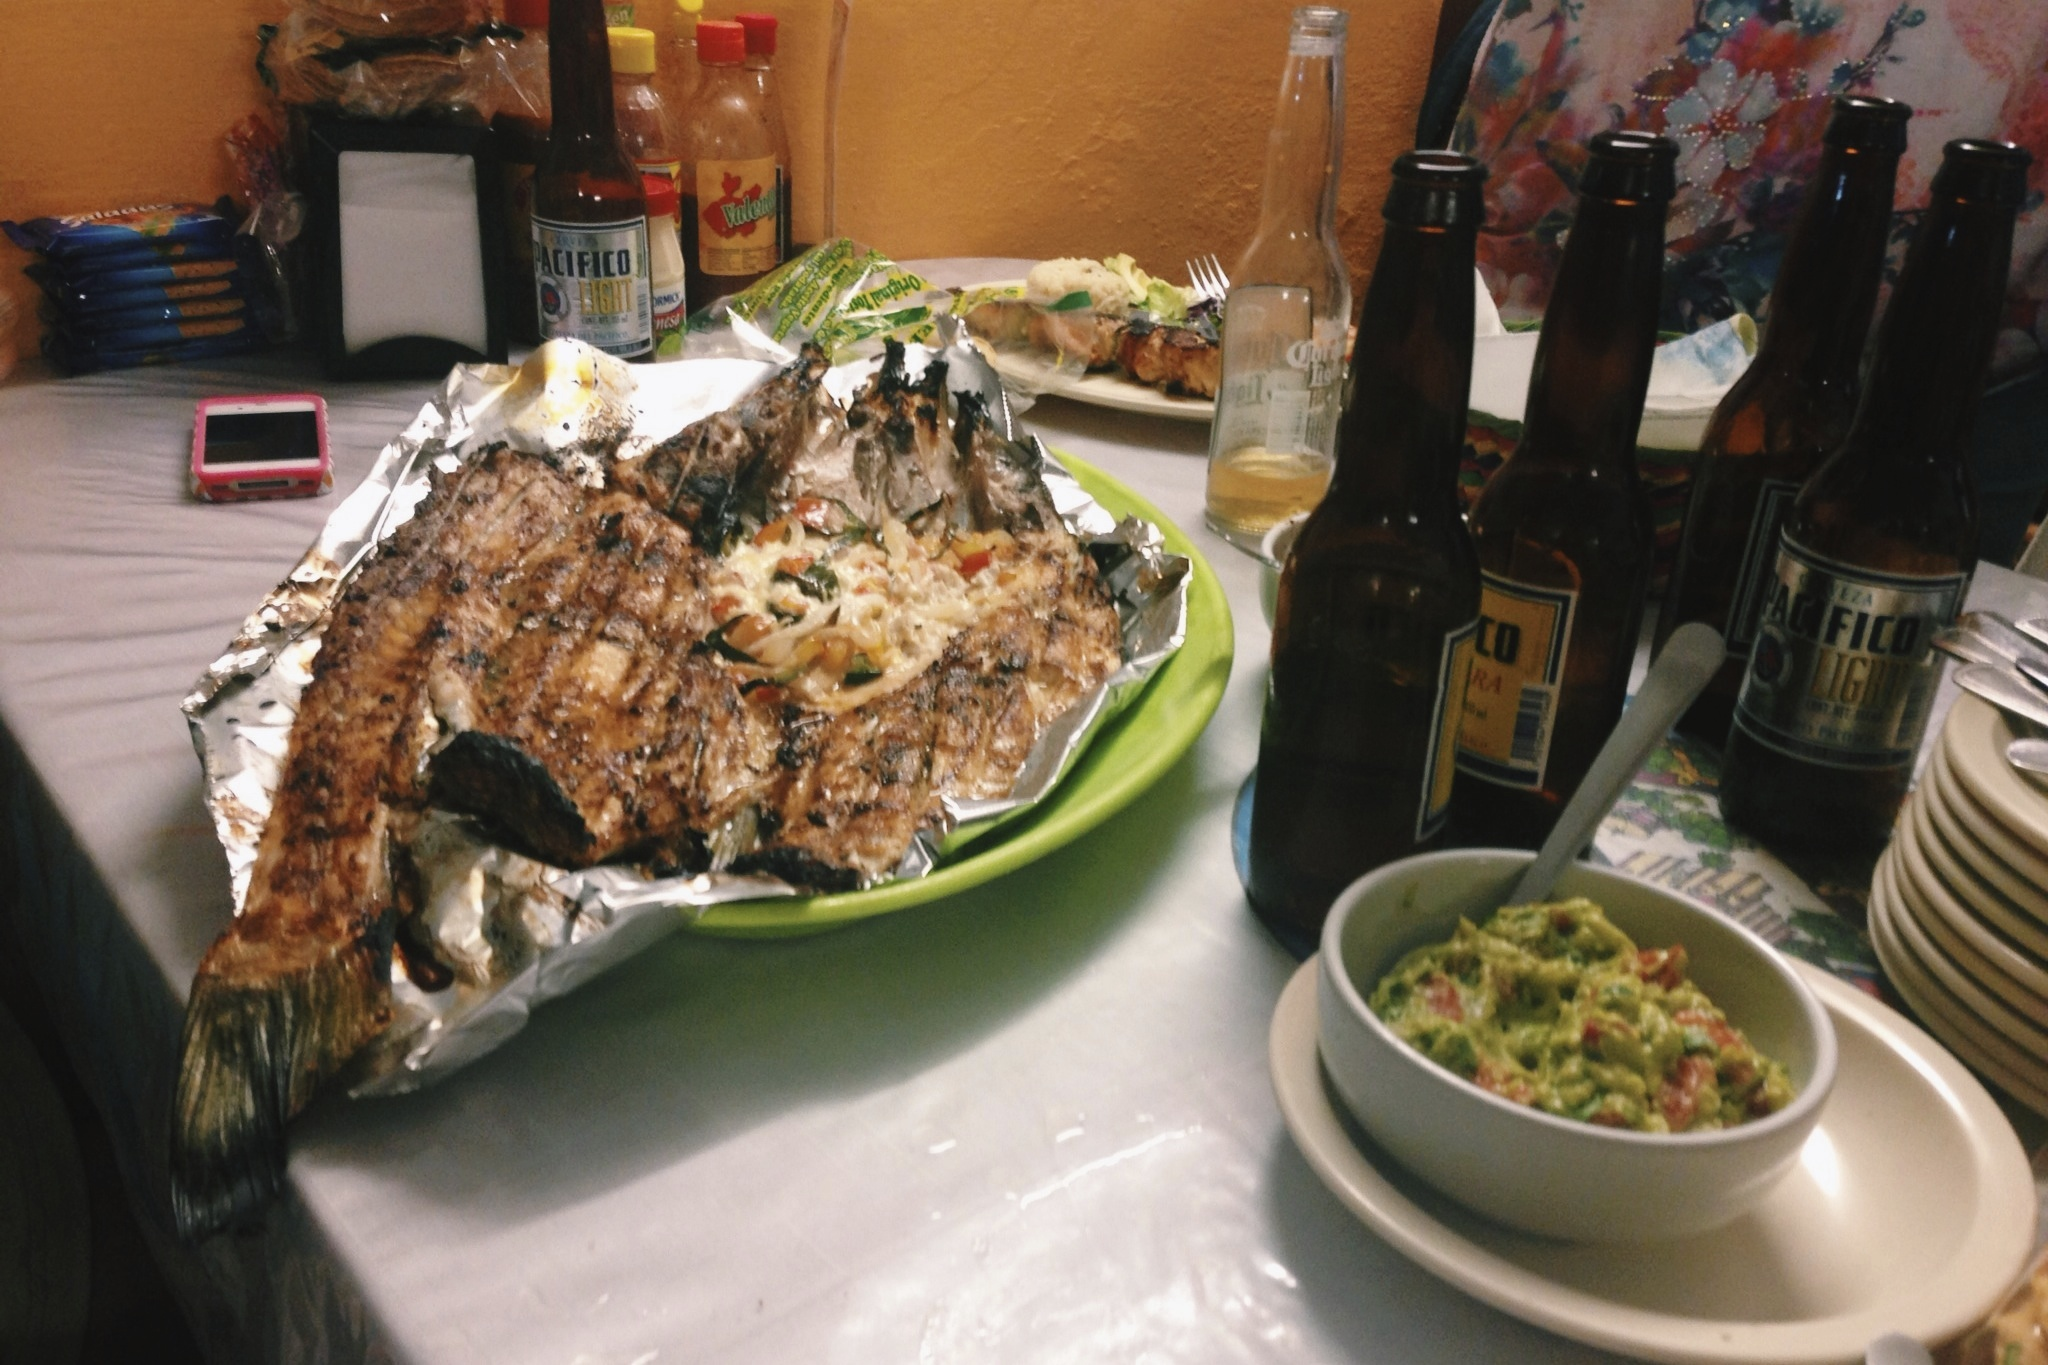 A lot of fish and cervezas